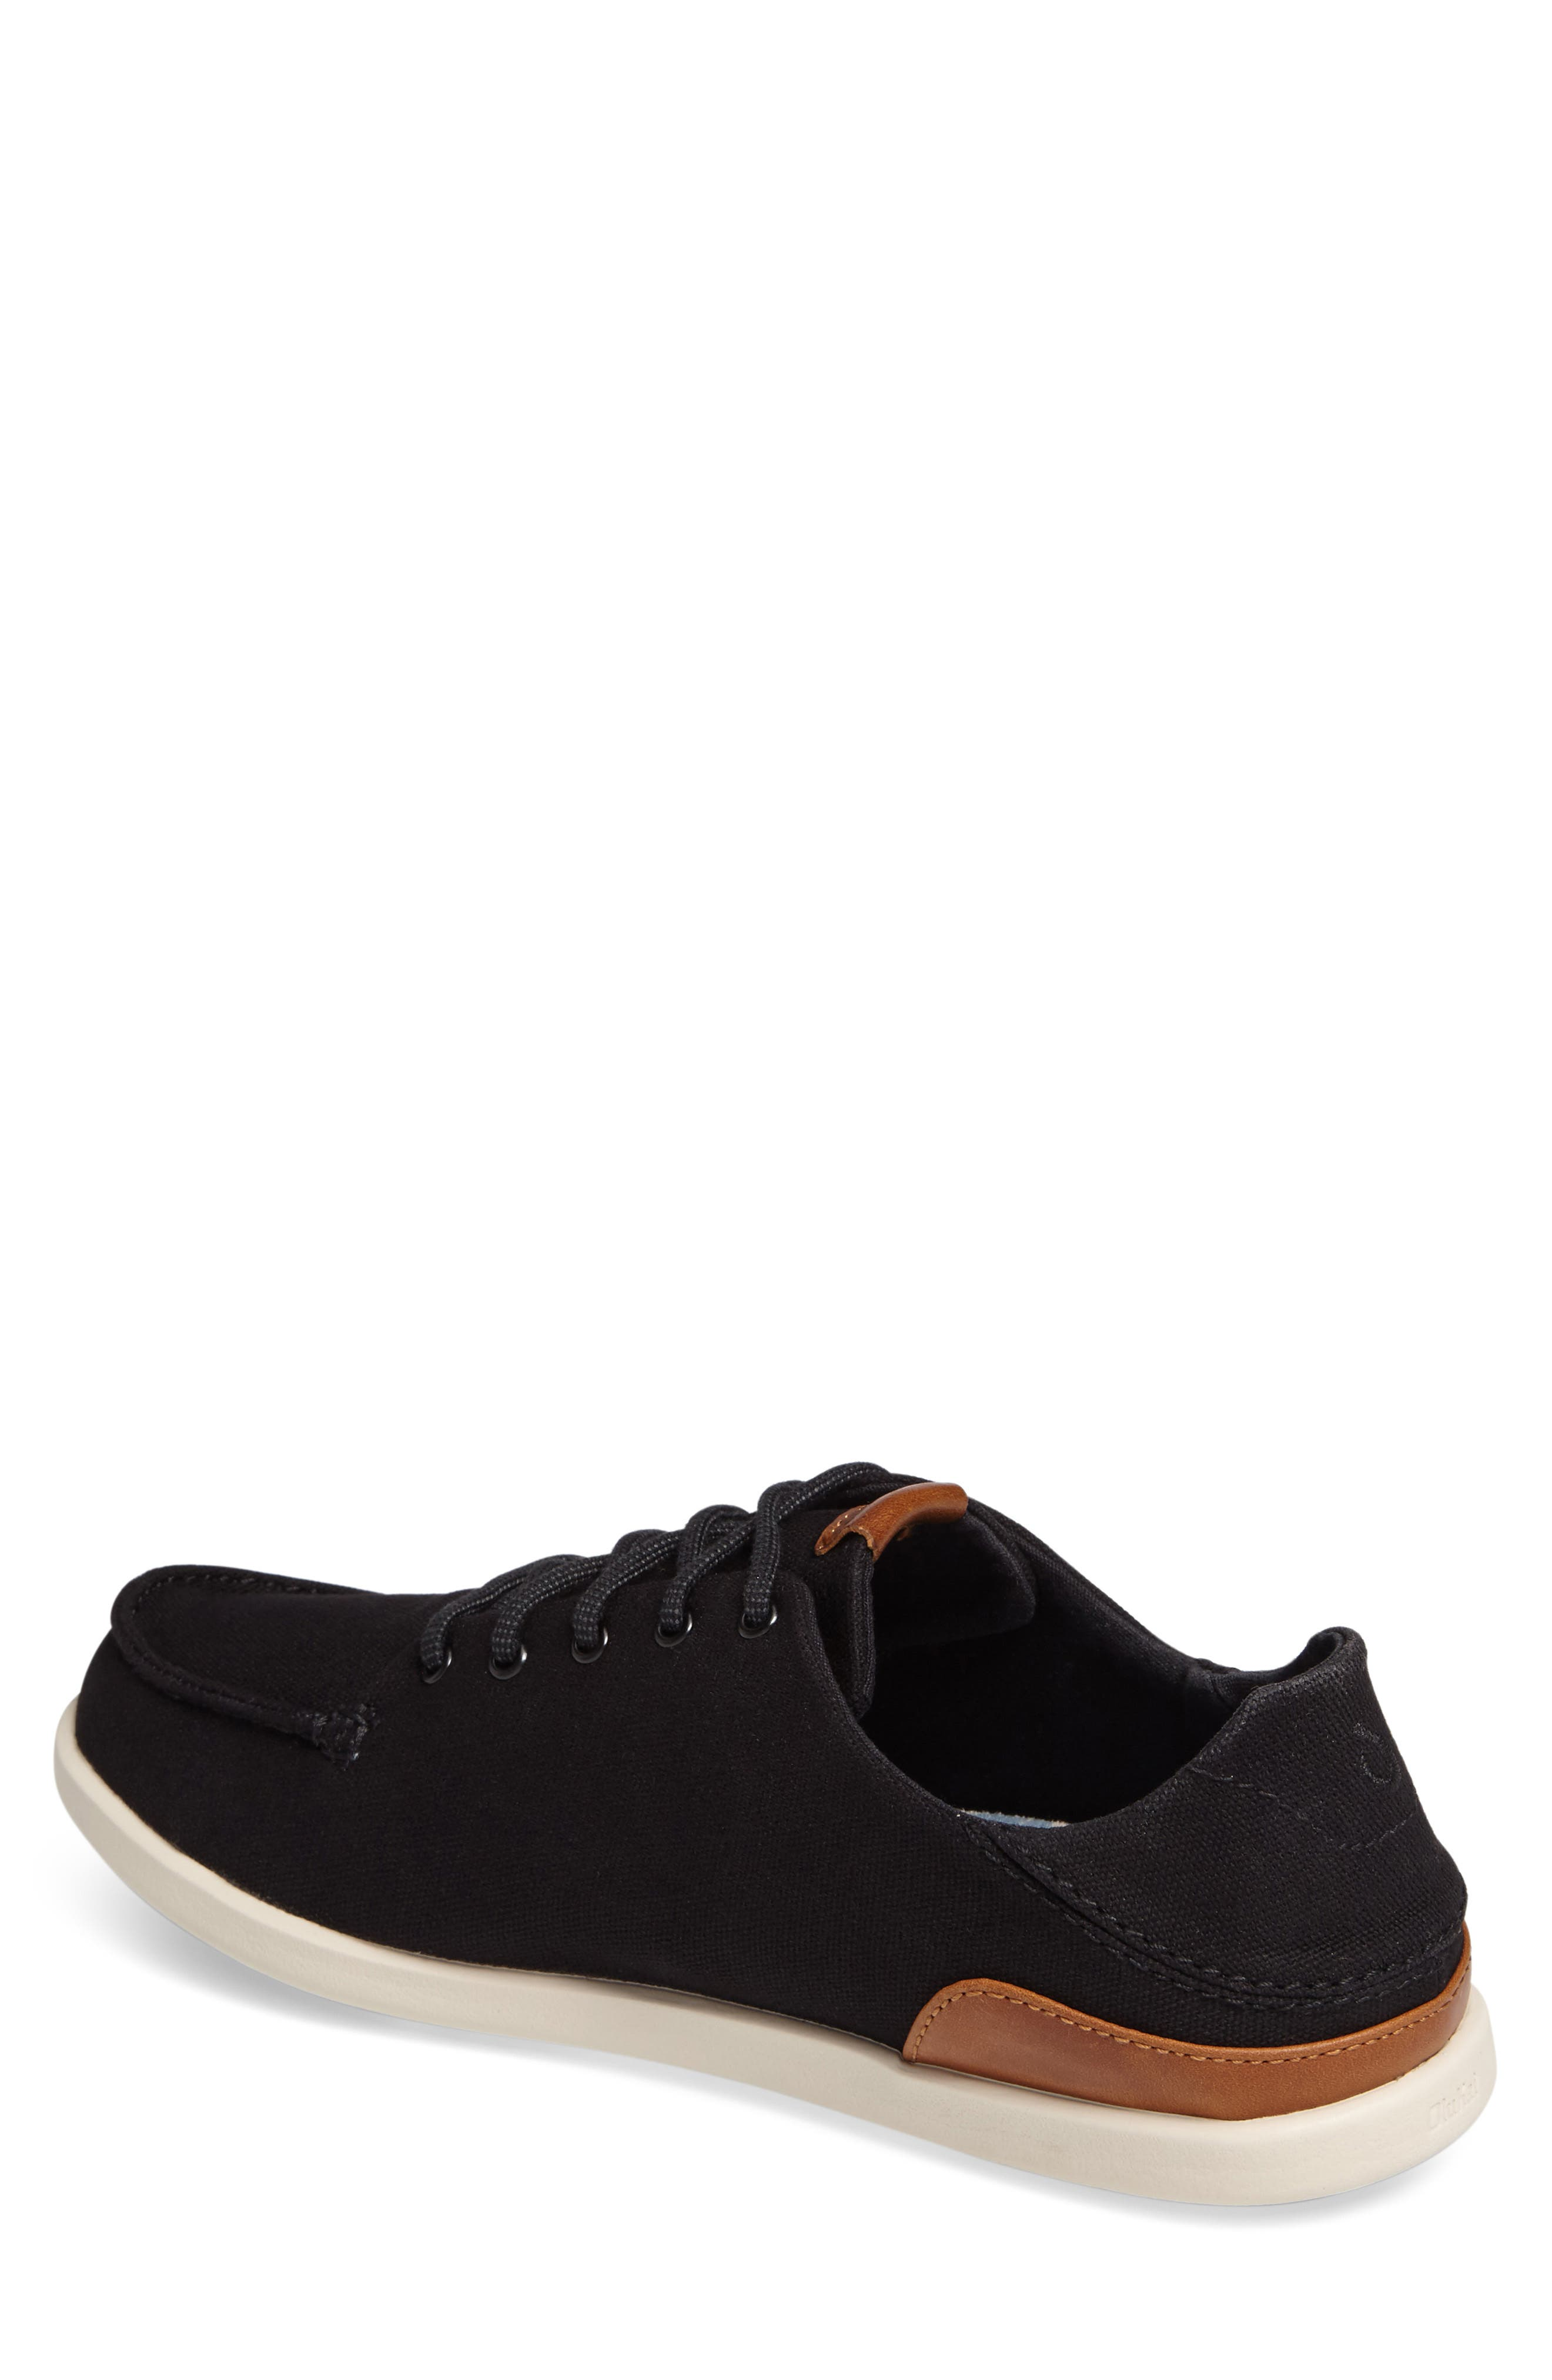 Manoa Sneaker,                             Alternate thumbnail 2, color,                             BLACK/ MUSTARD